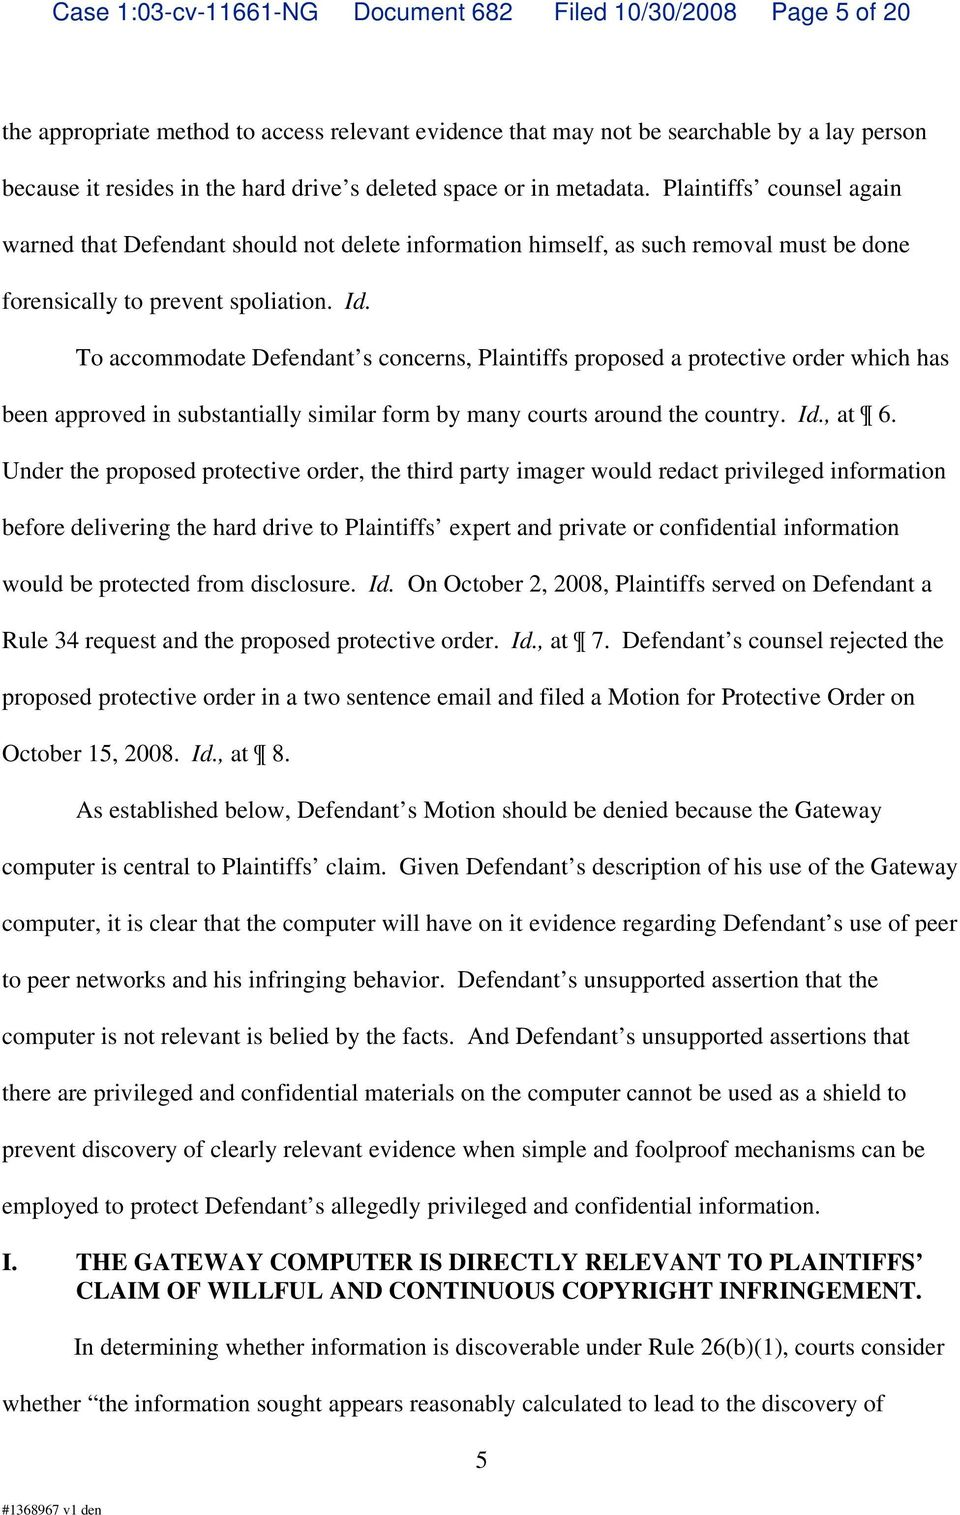 To accommodate Defendant s concerns, Plaintiffs proposed a protective order which has been approved in substantially similar form by many courts around the country. Id., at 6.